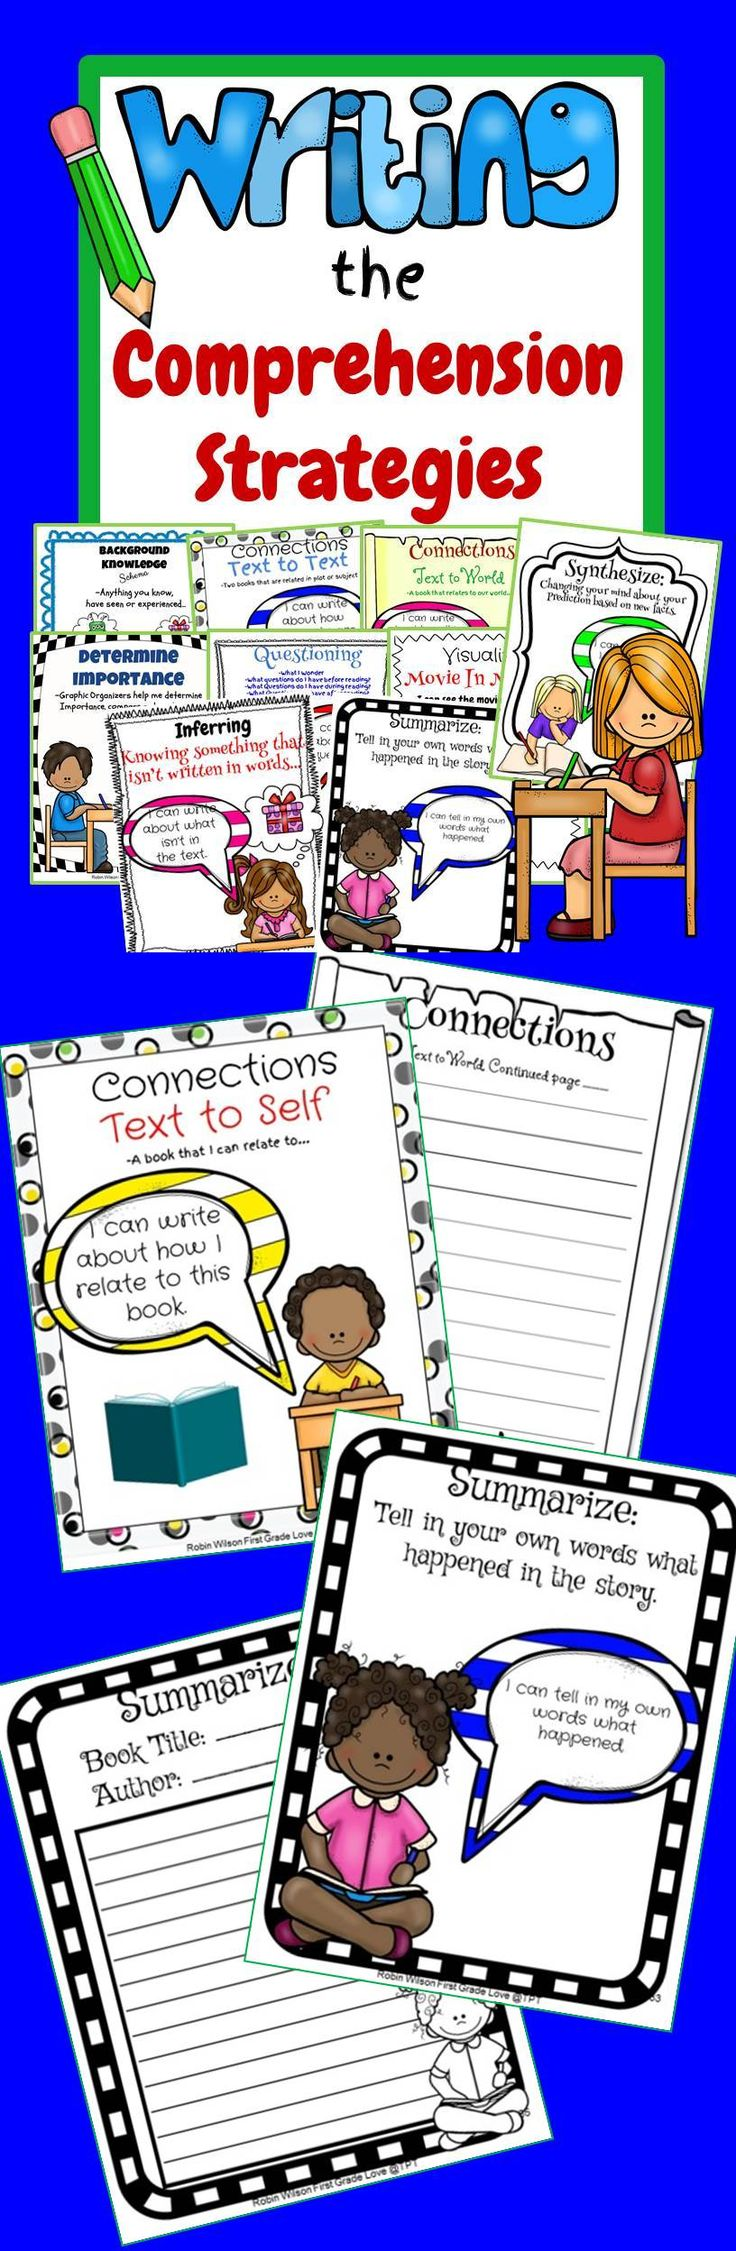 Worksheet Comprehension Programs reading comprehension strategies response sheets literacy sheets